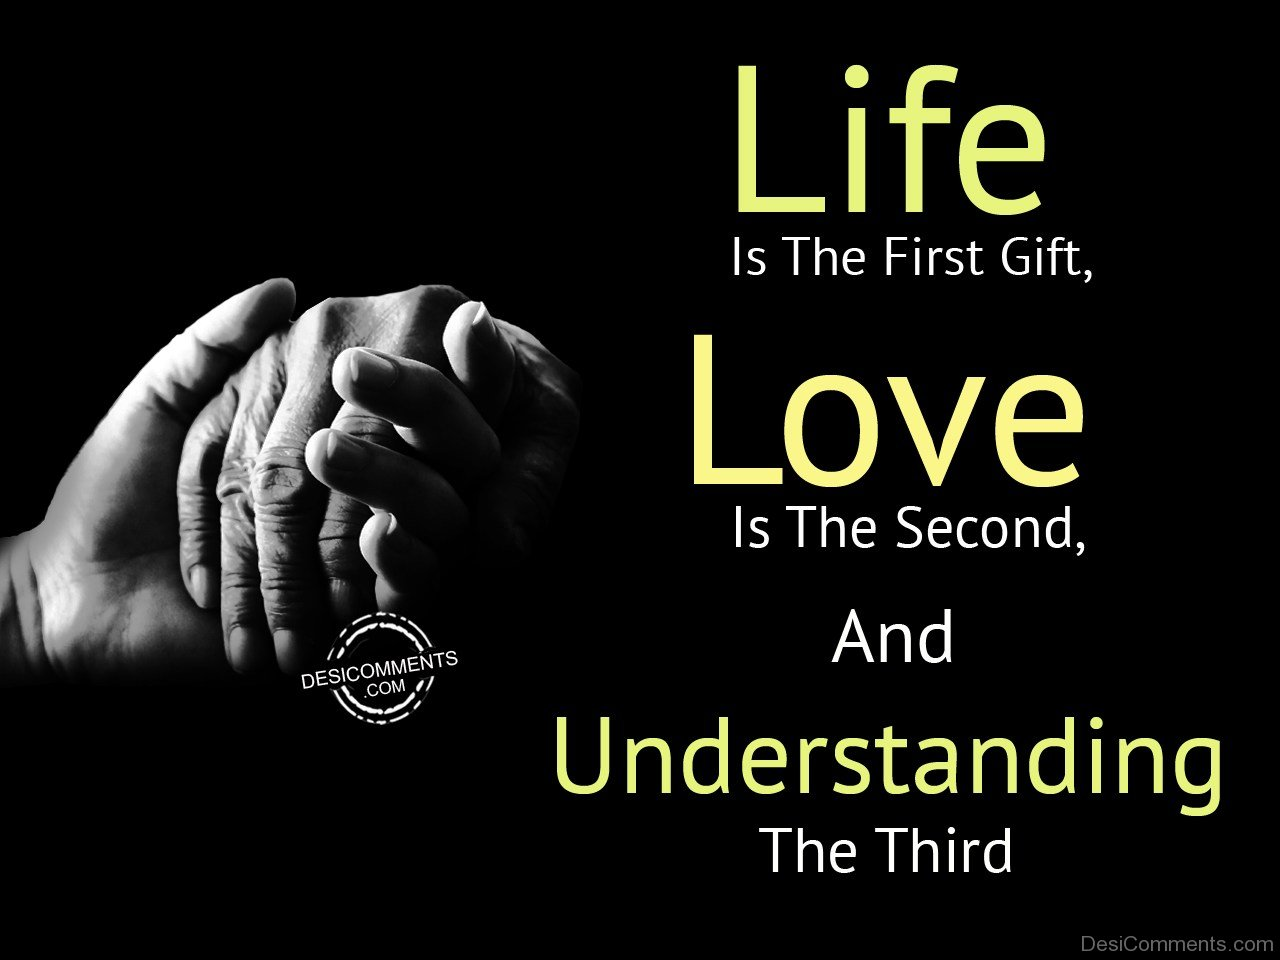 Life Is The First Gift And Love Is The Second - 35